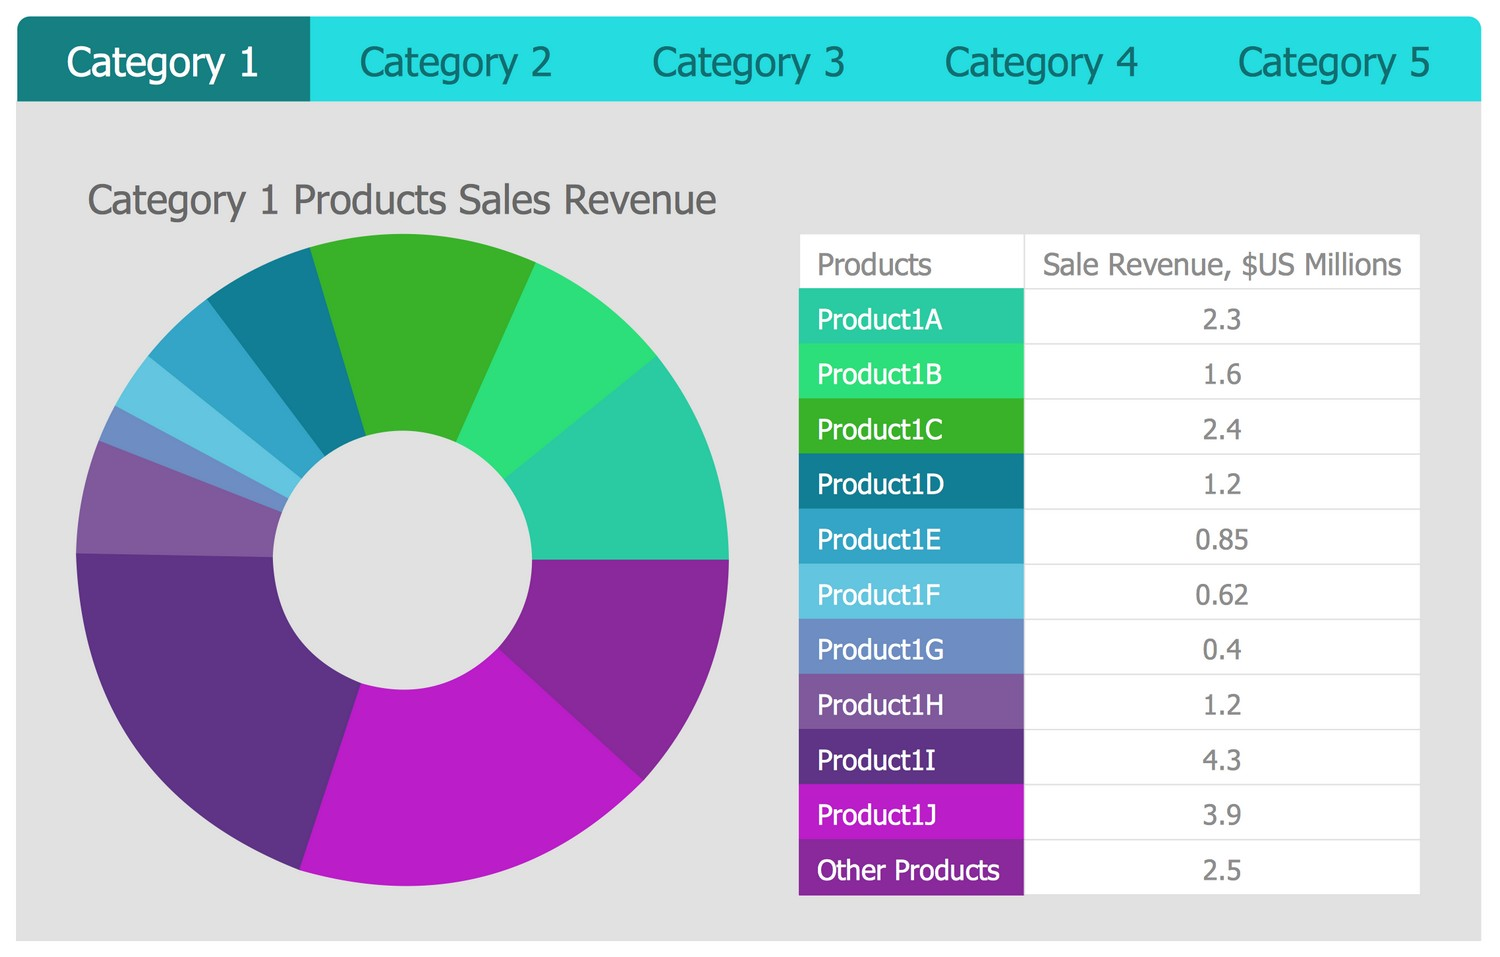 Business Intelligence Dashboard - Quarter Sales Revenue for Top 10 Products by Categories